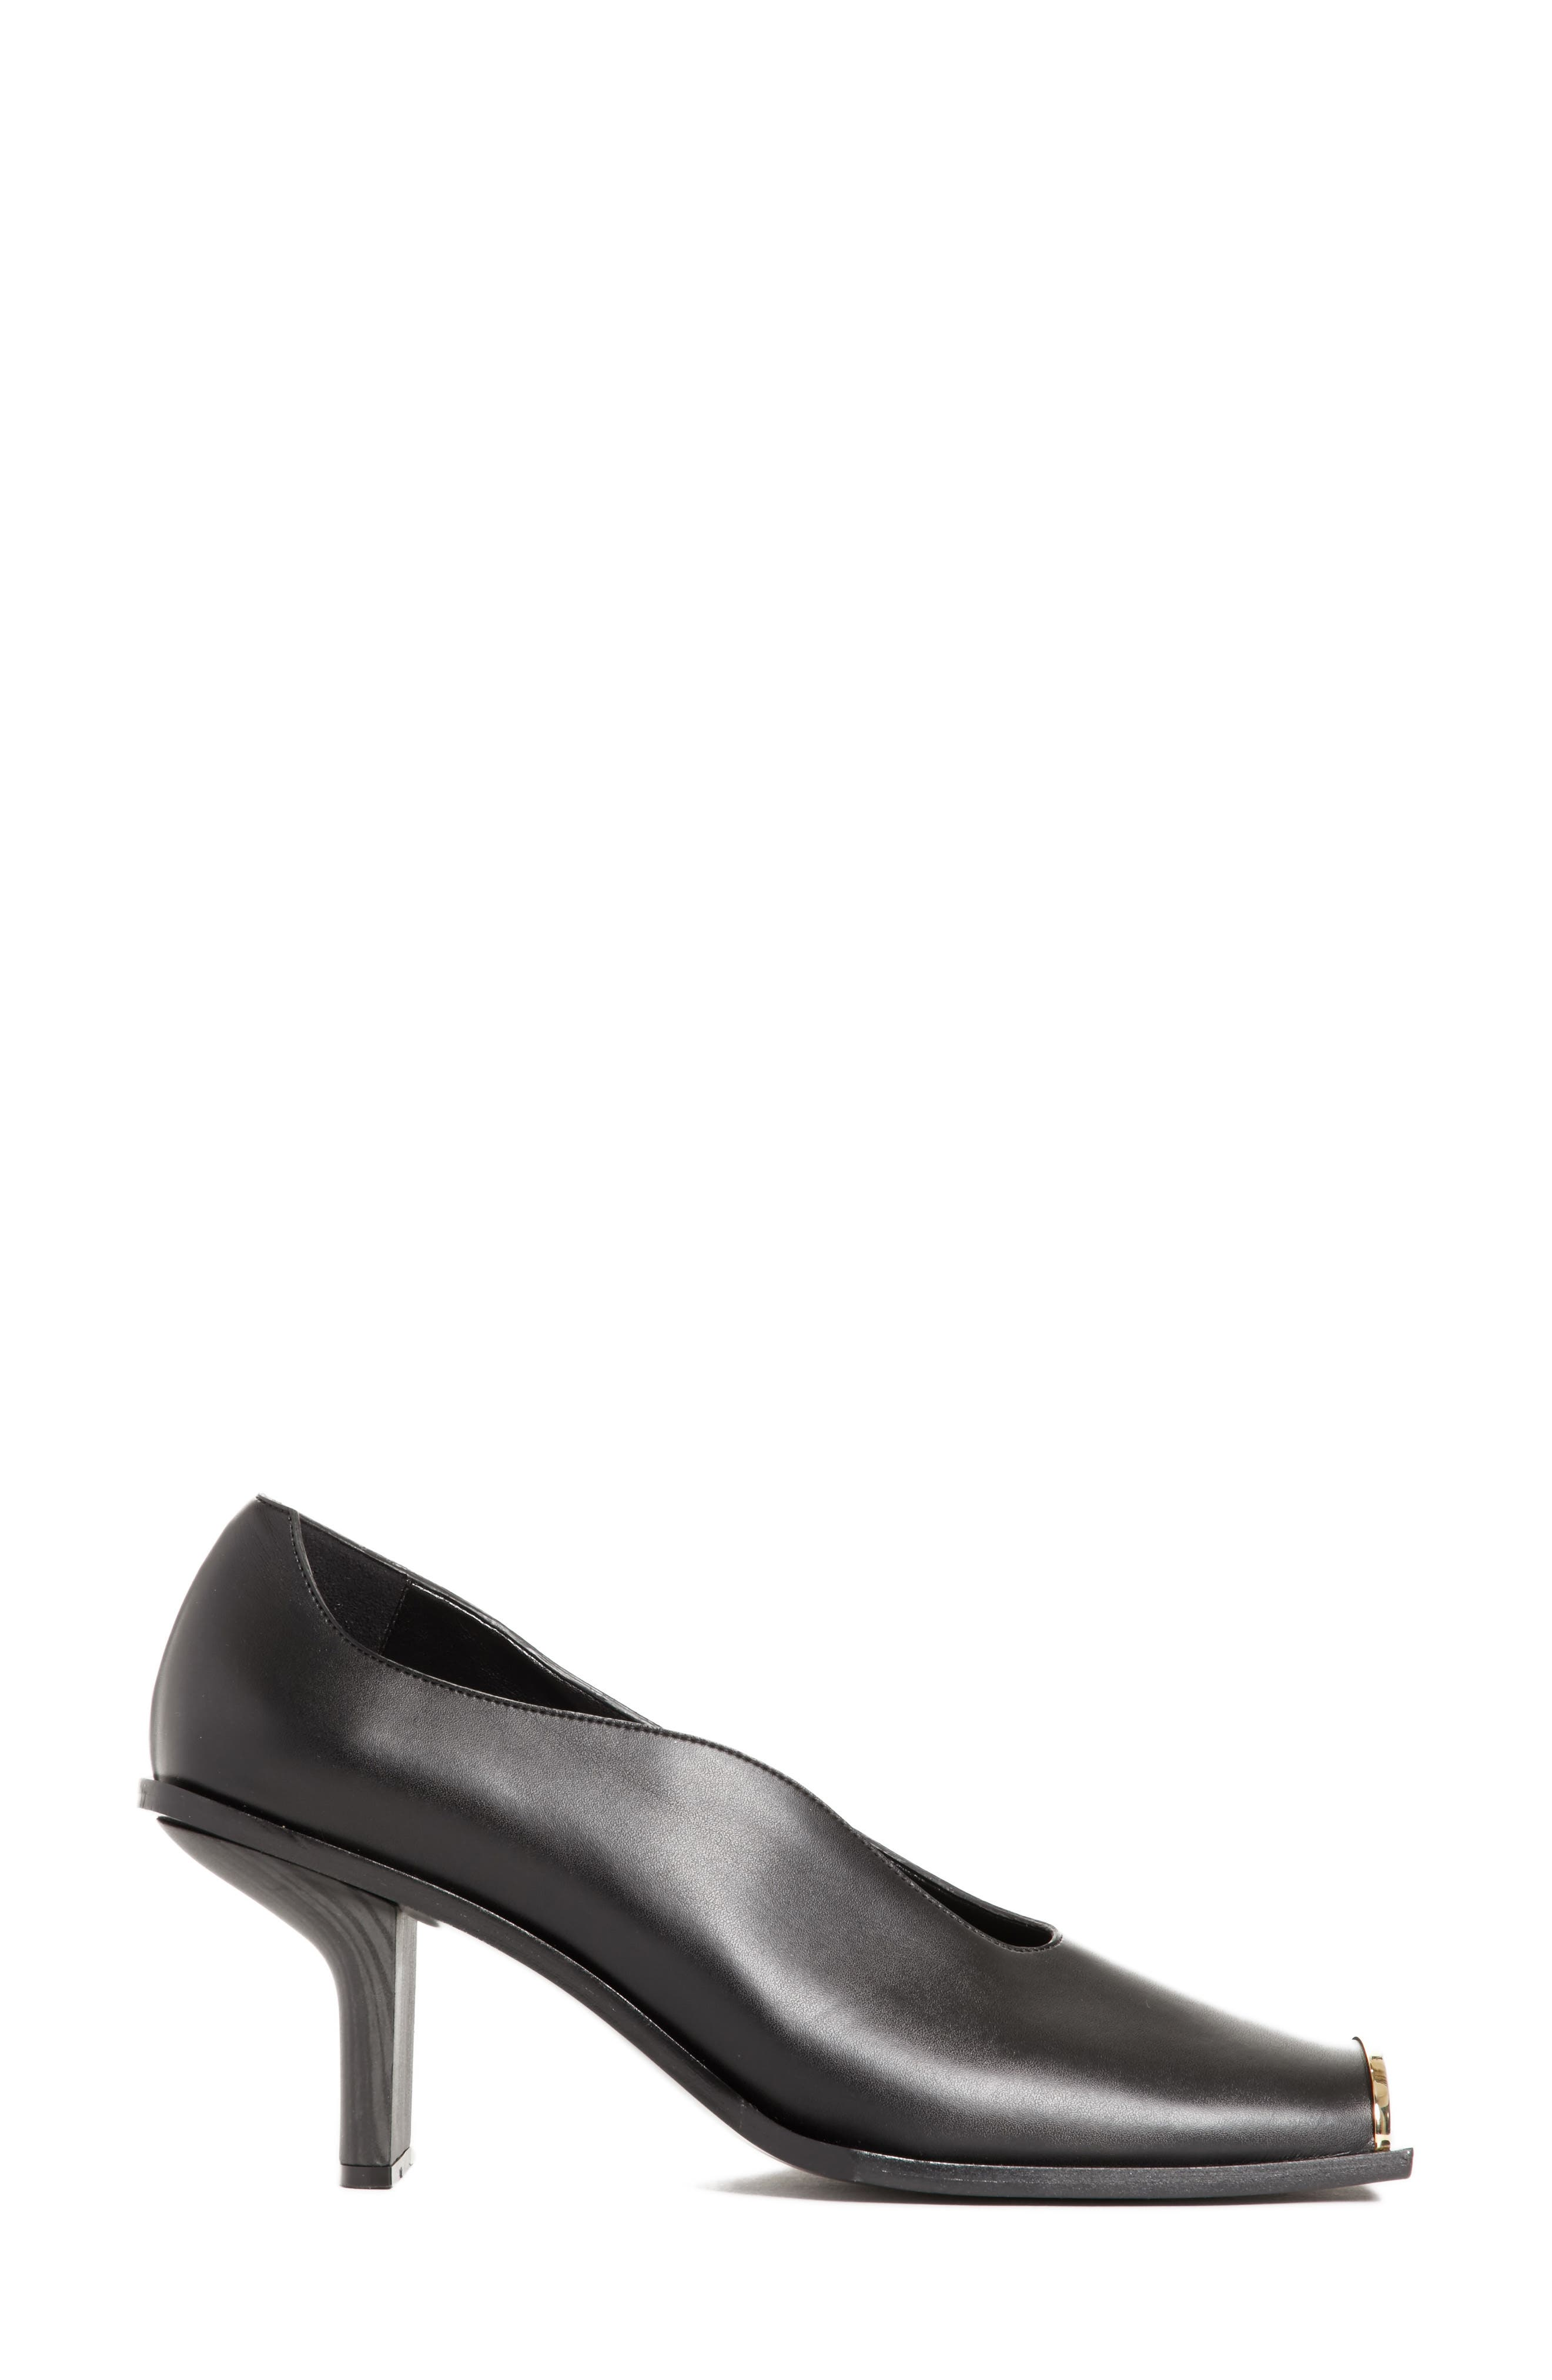 Cap Toe Pump,                             Alternate thumbnail 3, color,                             001